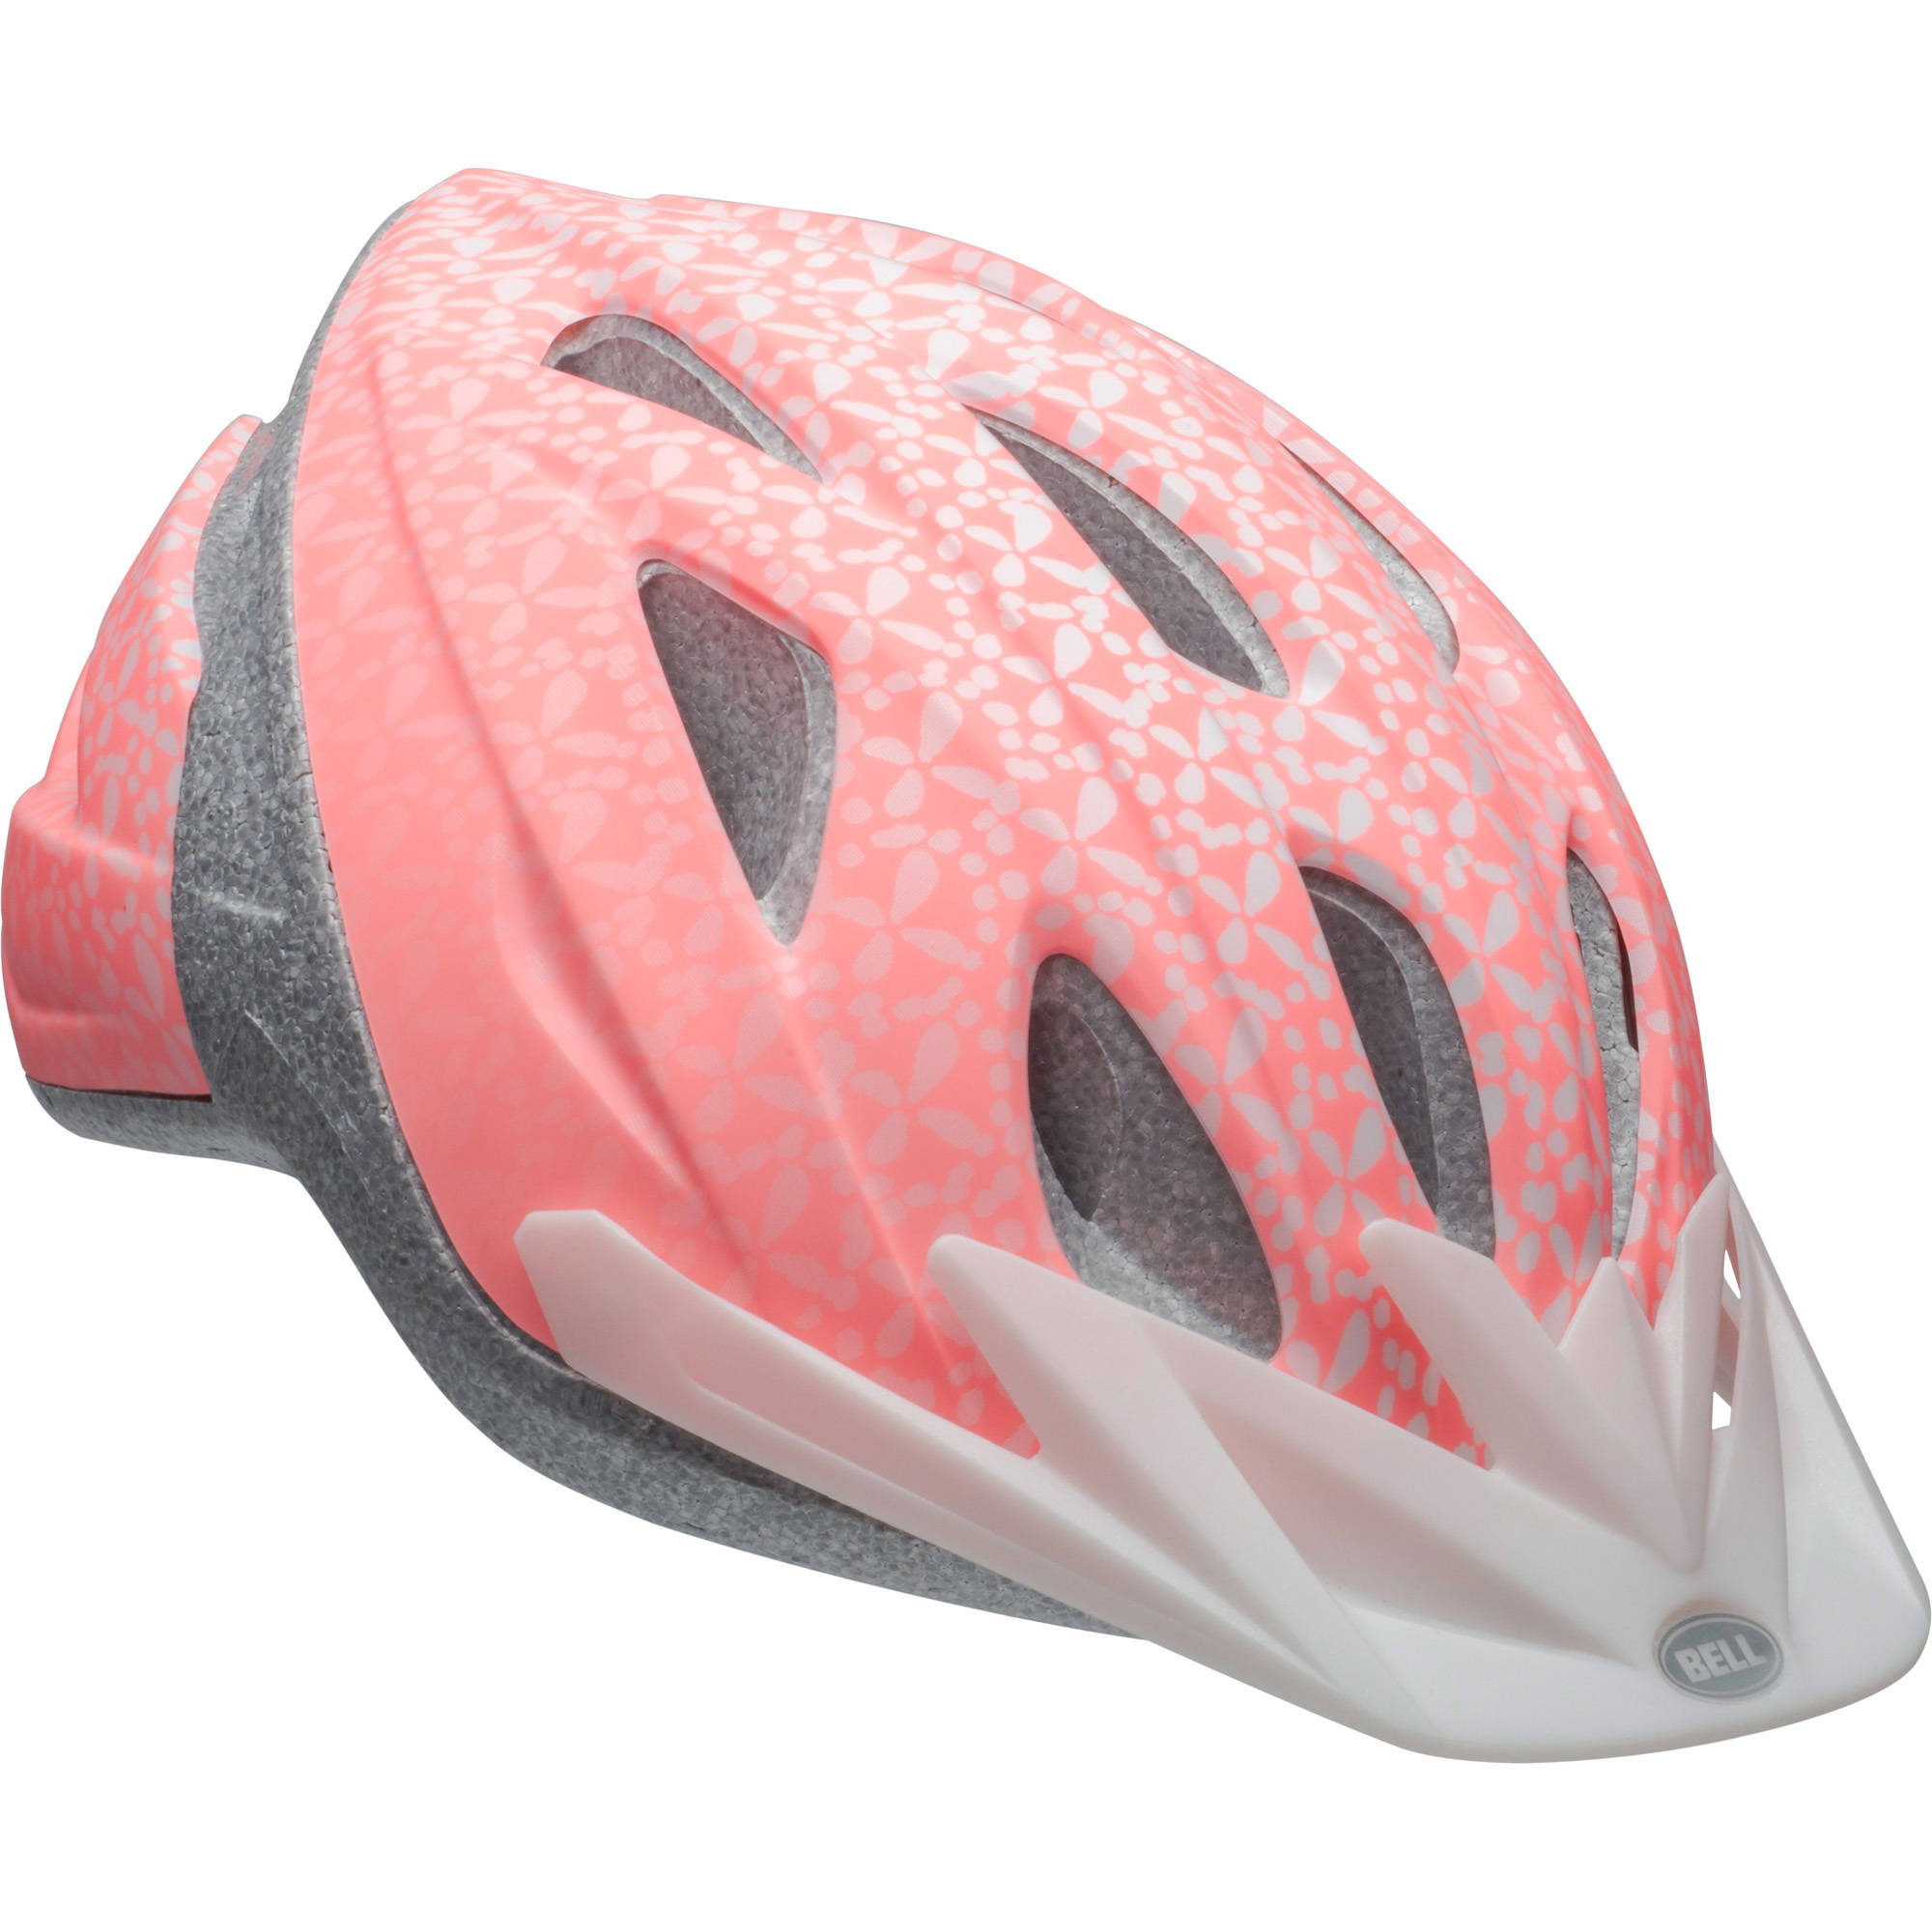 Bell Sports Bia Adult Women's Bike Helmet, Silver Sash